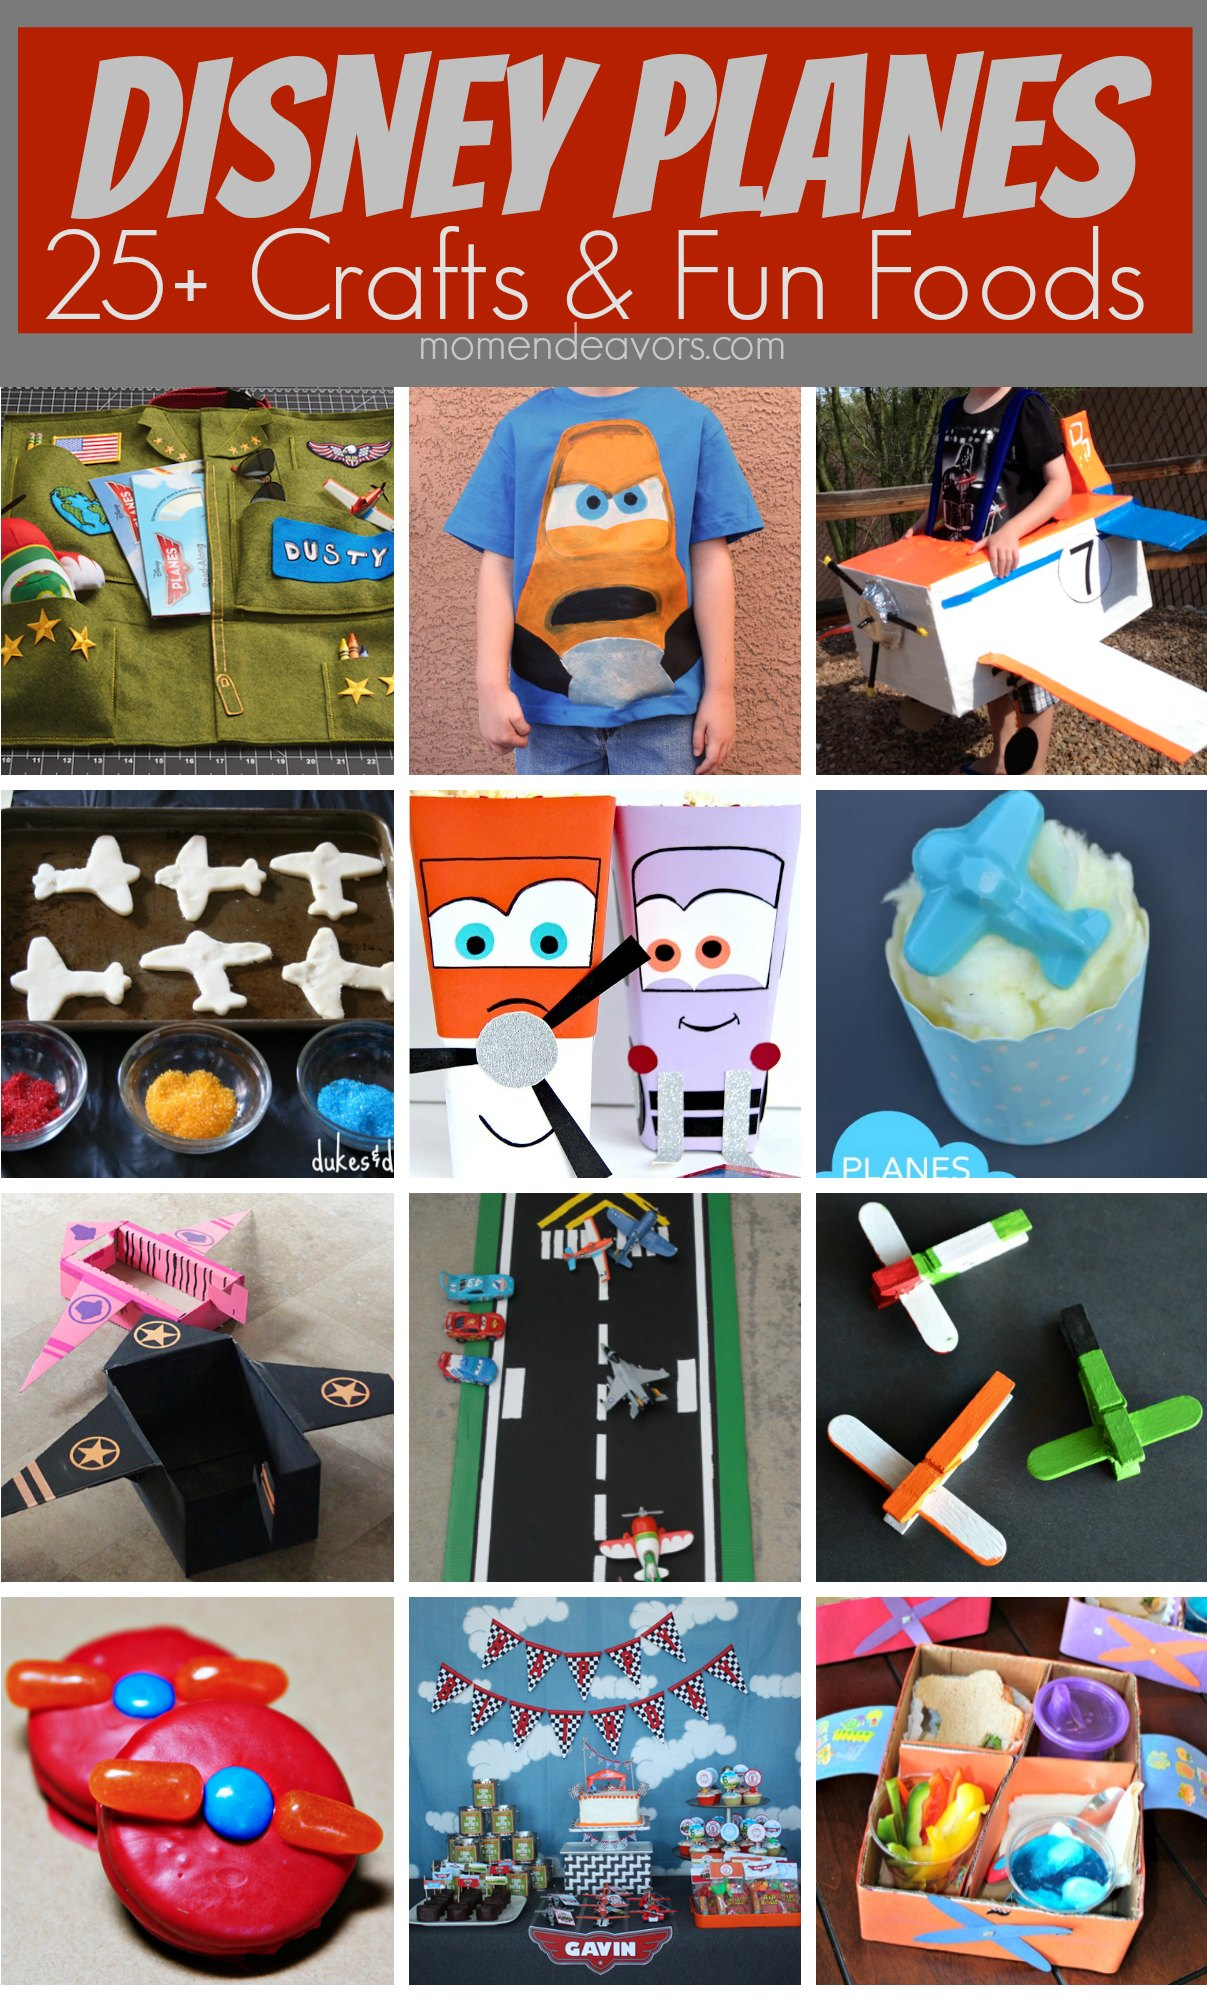 25+ Disney Planes Crafts & Fun Foods